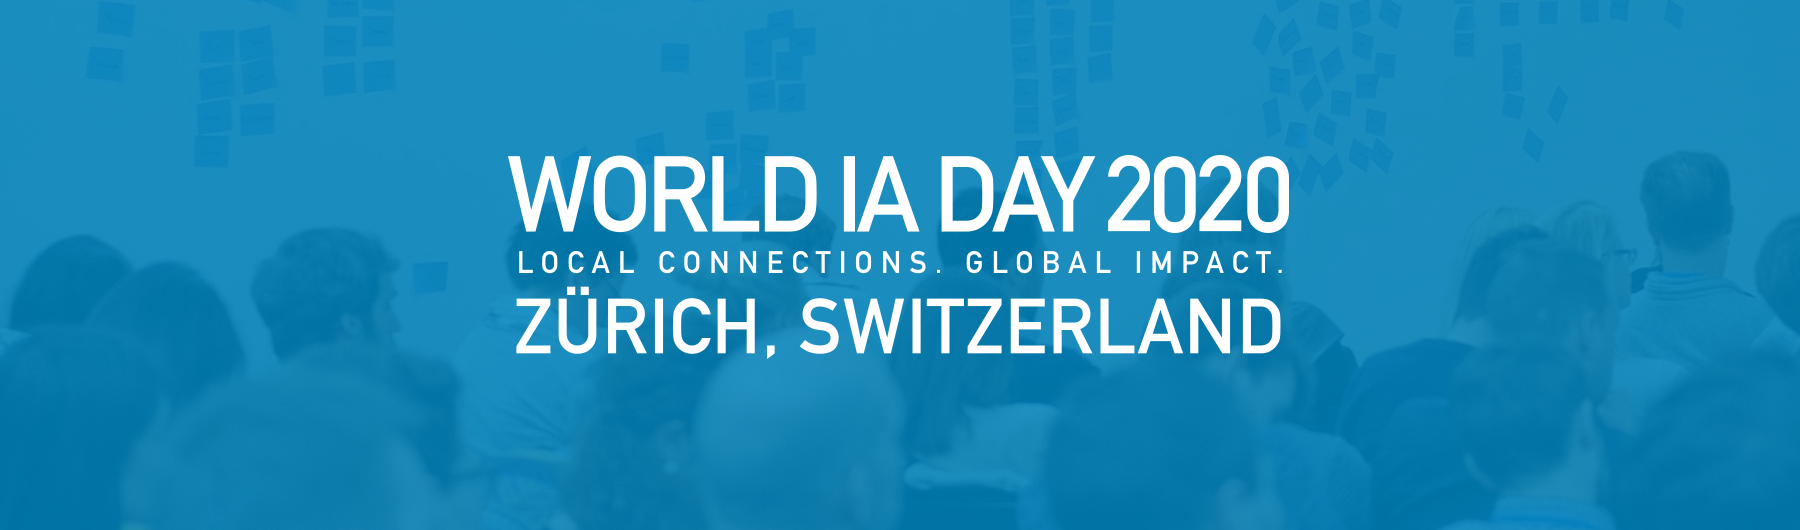 World IA Day Zürich 2020